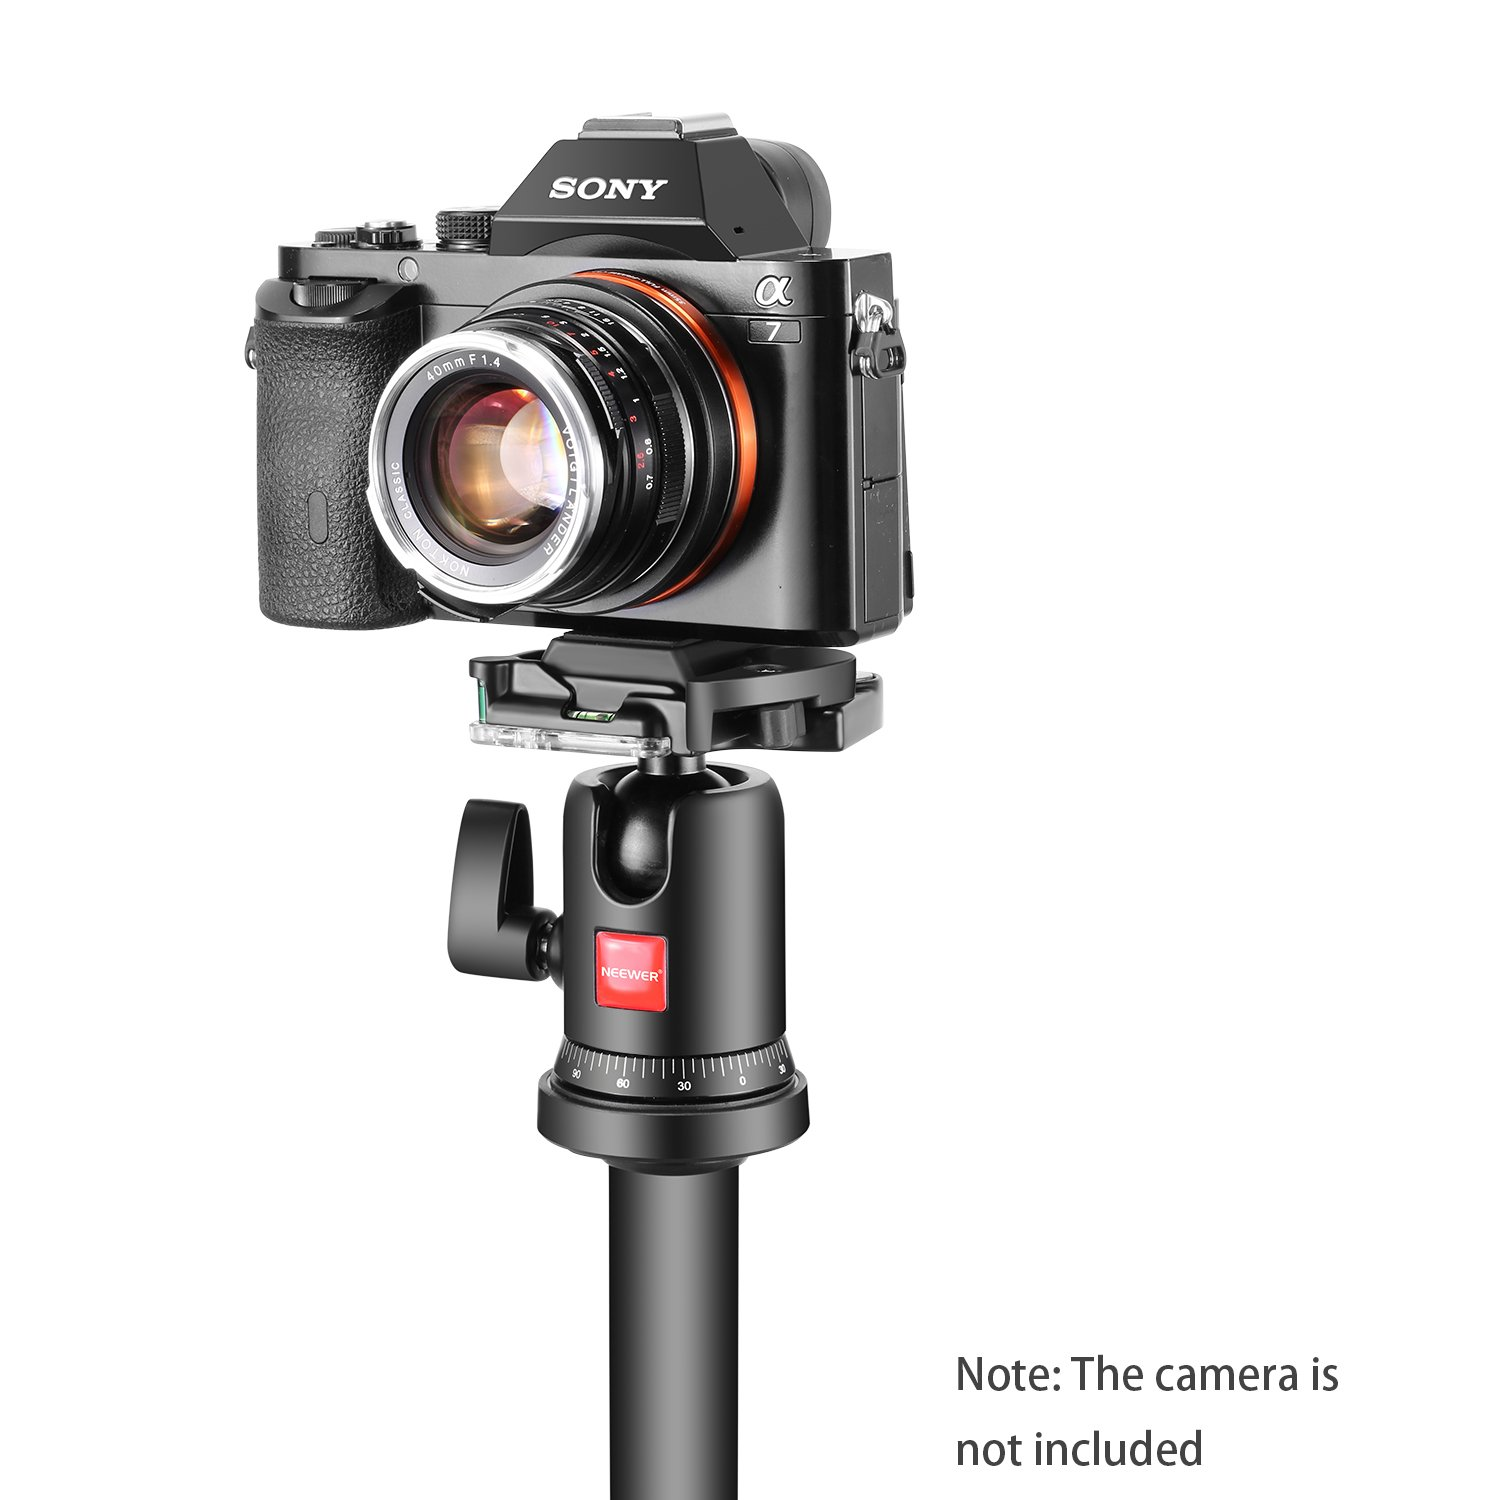 Neewer 360 Degree Ball Head Video Camera Tripod Panoramic with 1//4 Inch Quick Shoe Plate and Bubble Level for Tripod Monopod DSLR Camera Camcorder